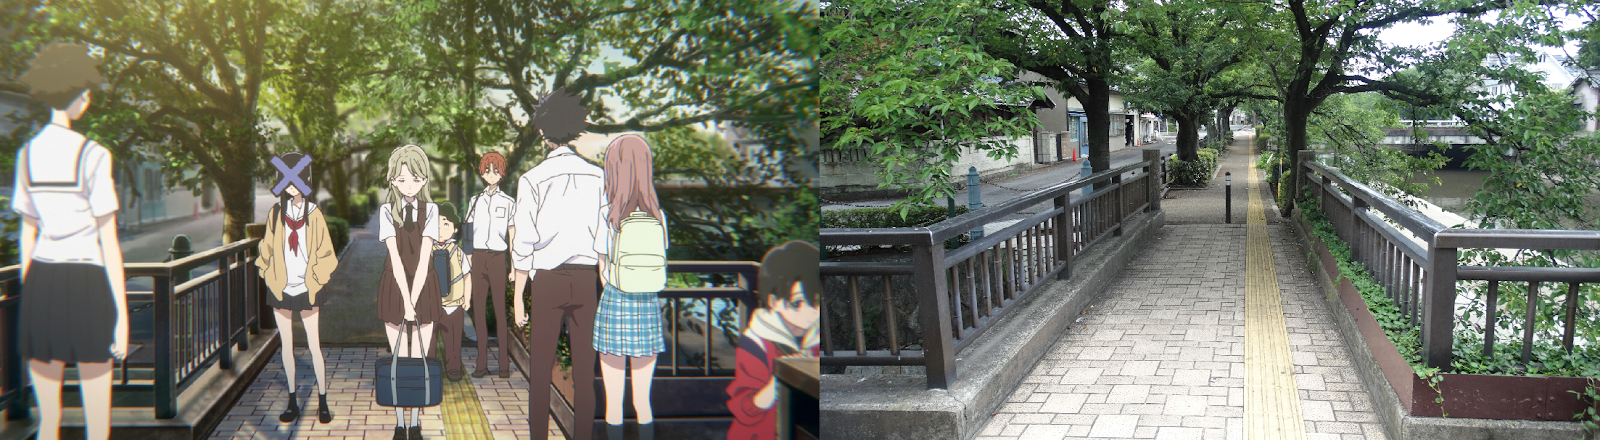 a silent voice, anime, real life, pilgrimage